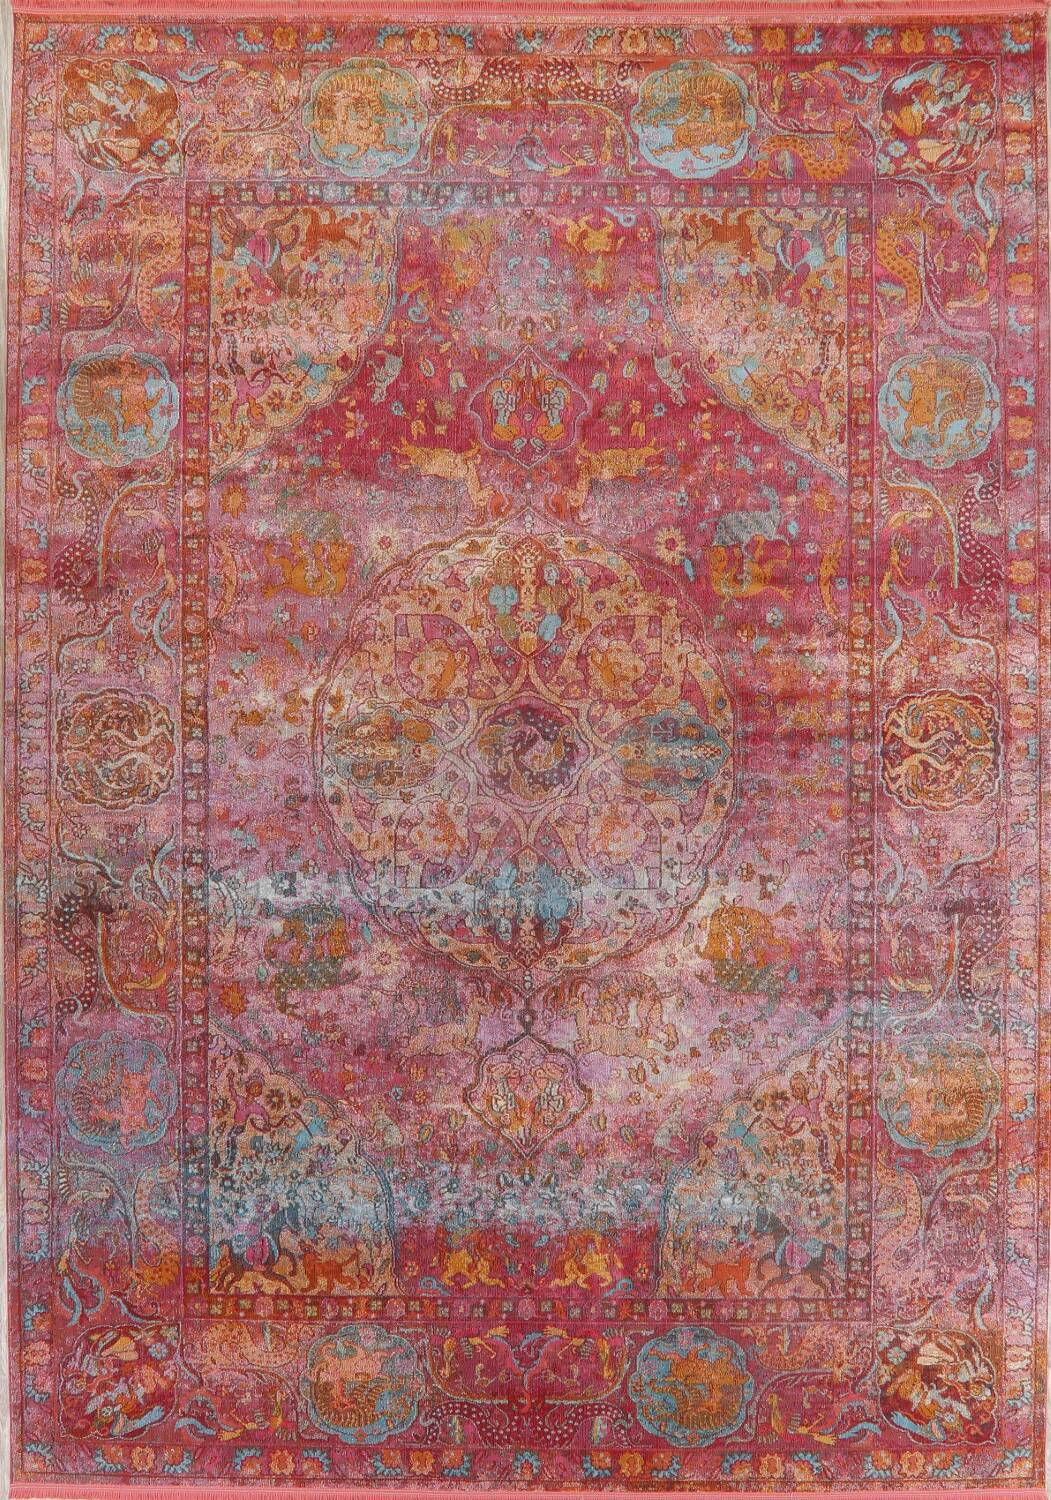 Hunting Design Pictorial Distressed Heat-Set Area Rugs image 26